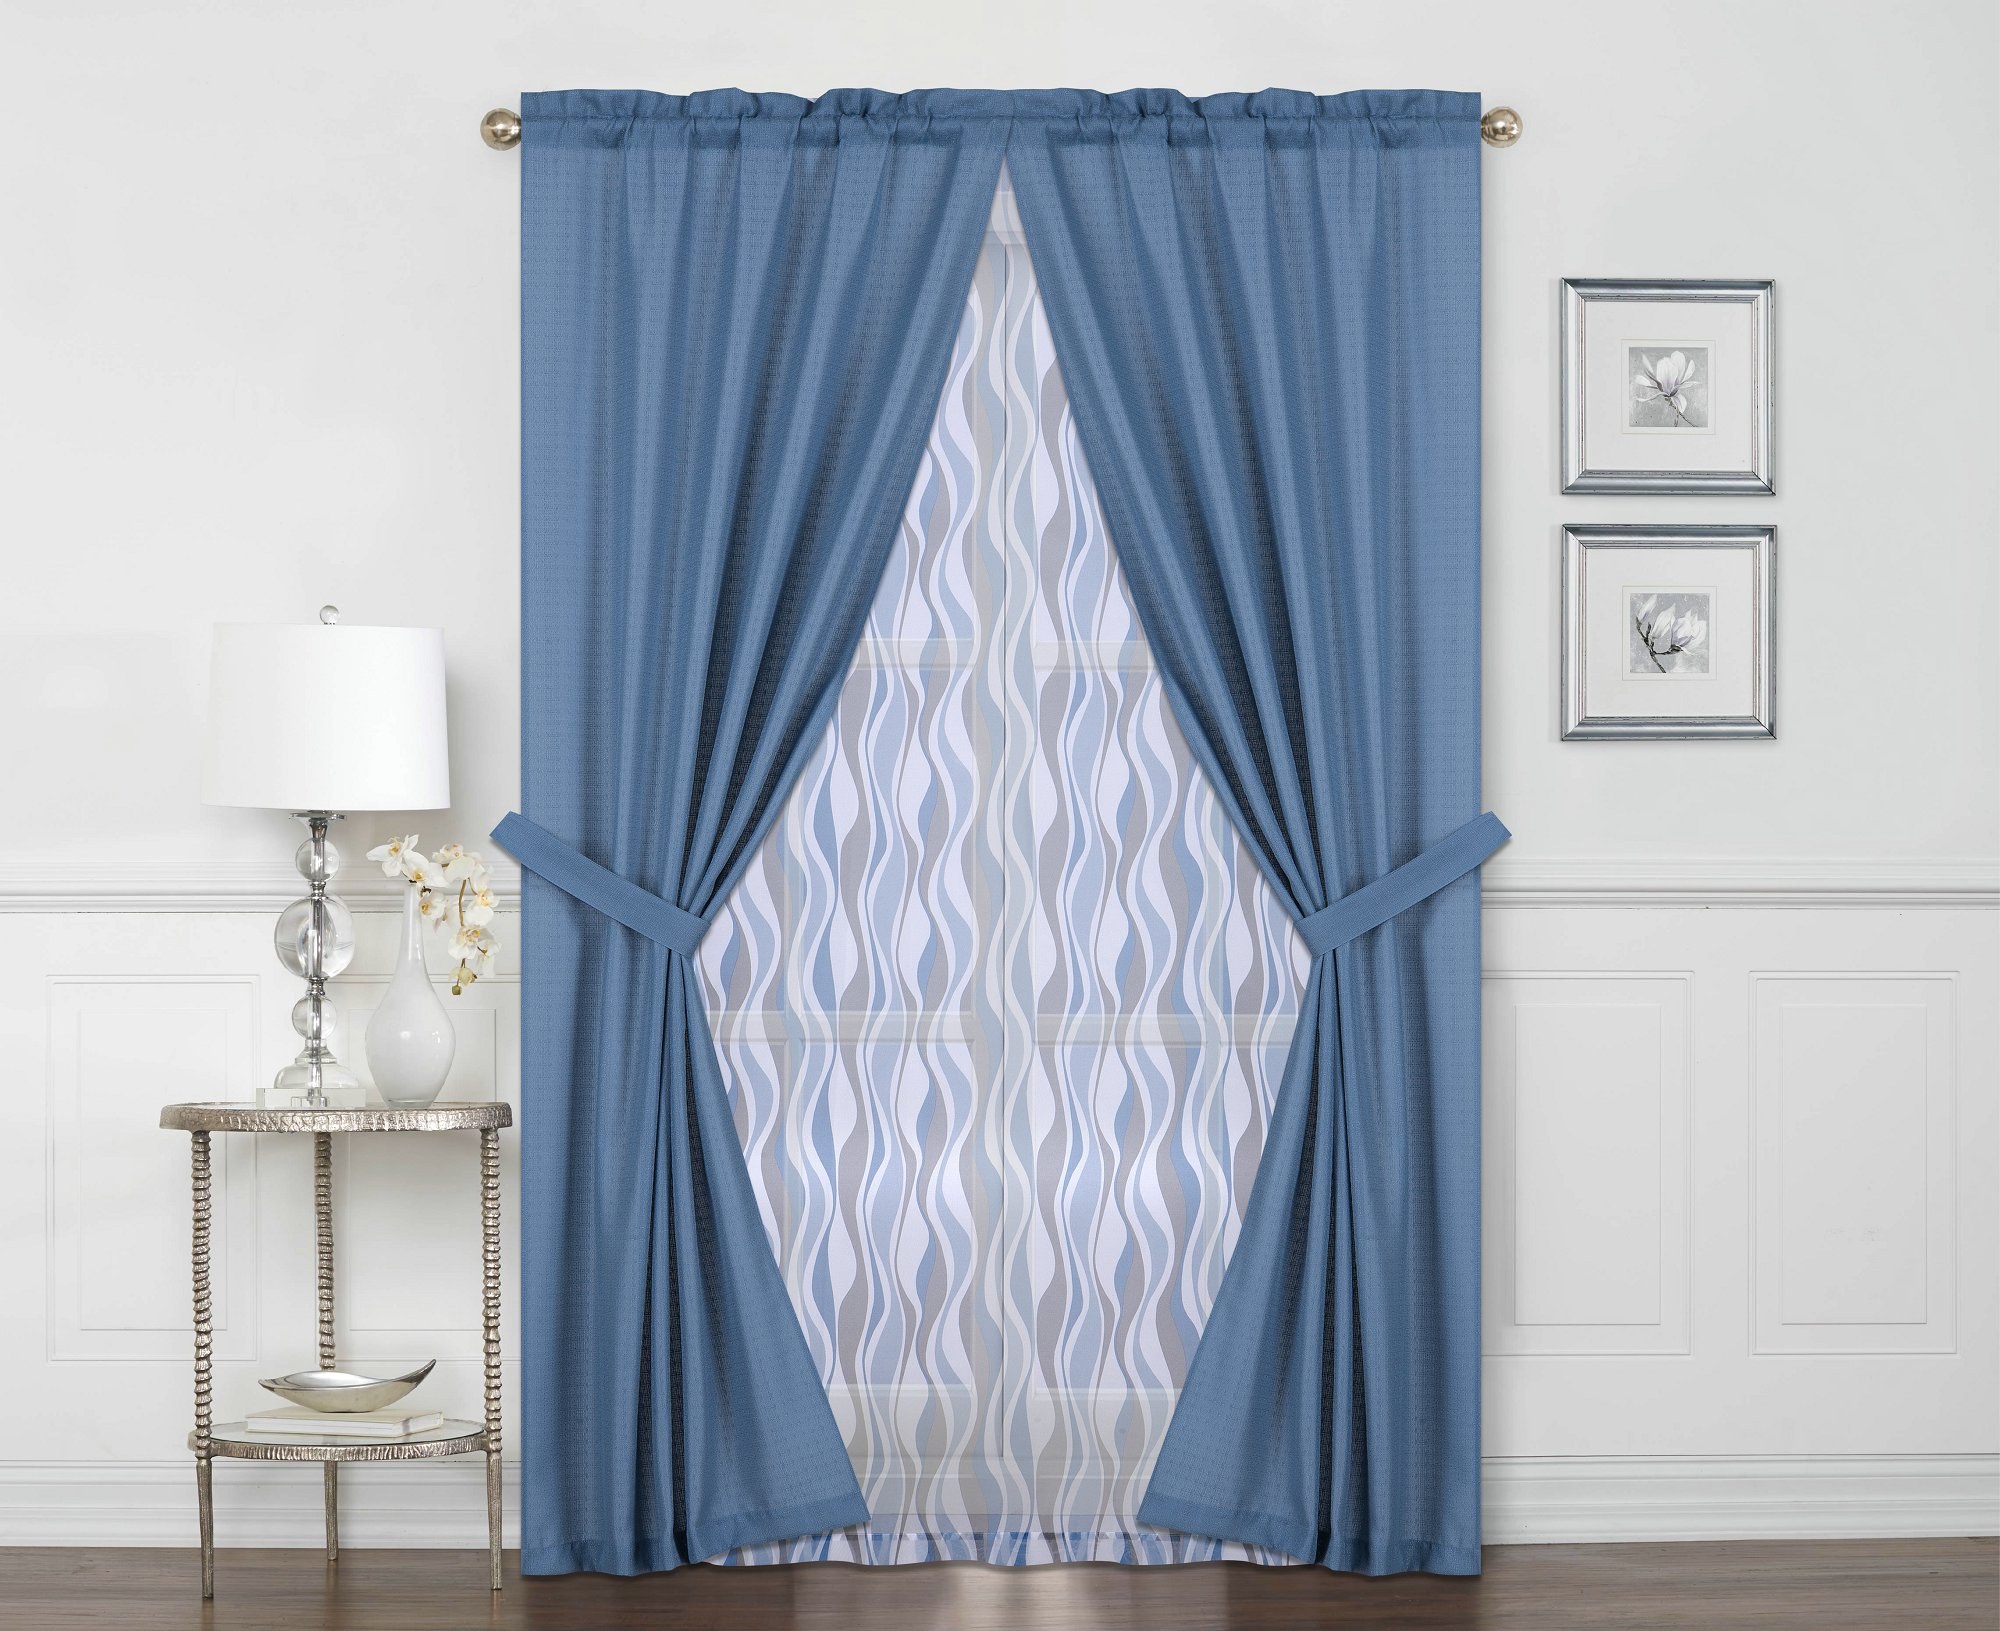 Mainstays 6 Piece Curtain Set by Idea Nuova